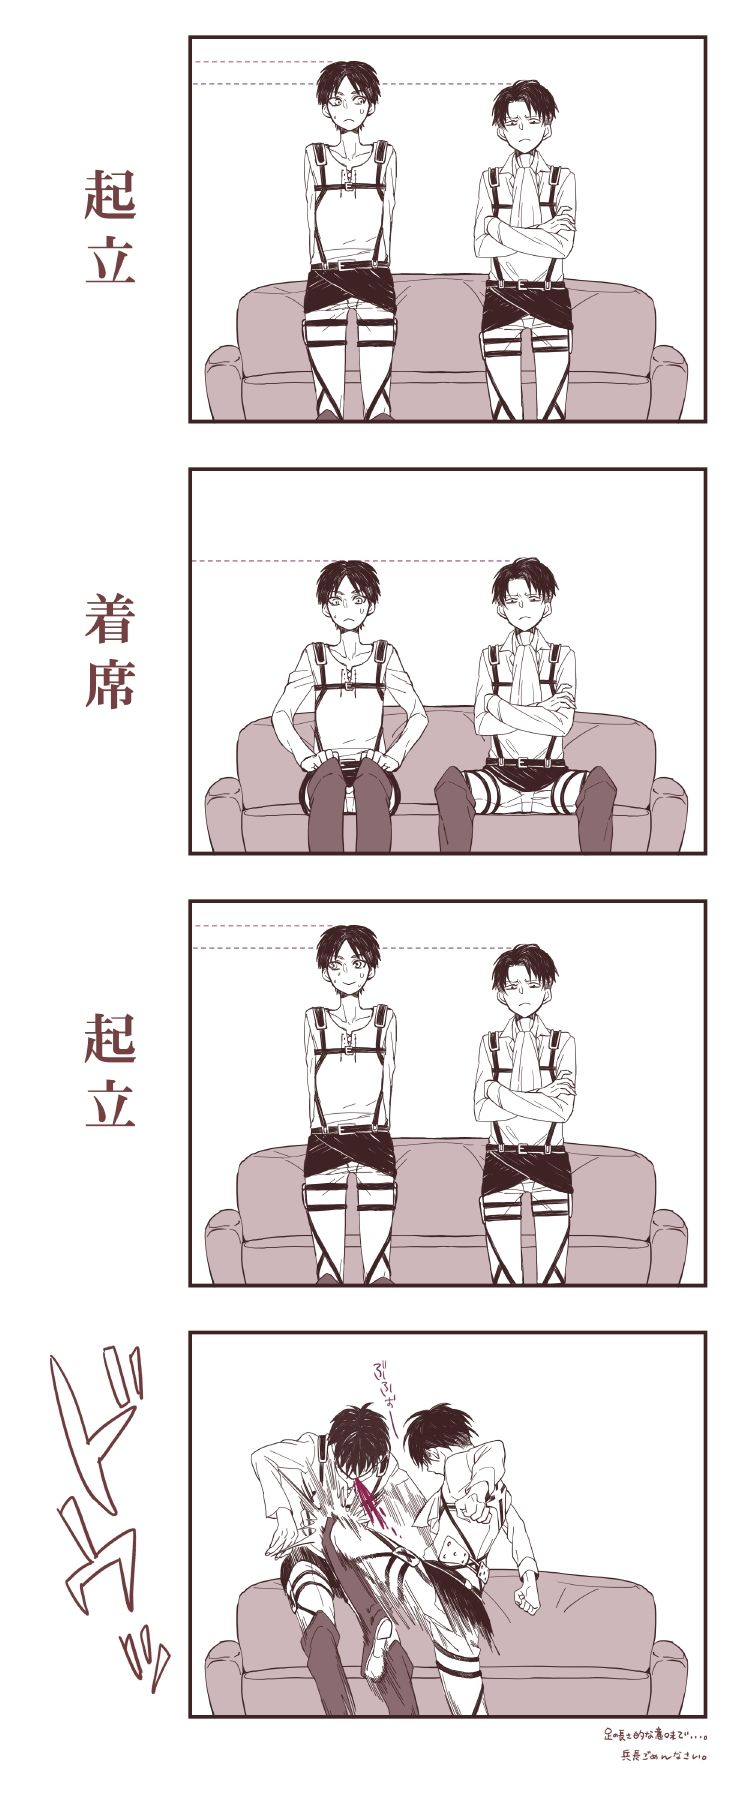 levi and eren height difference in relationship